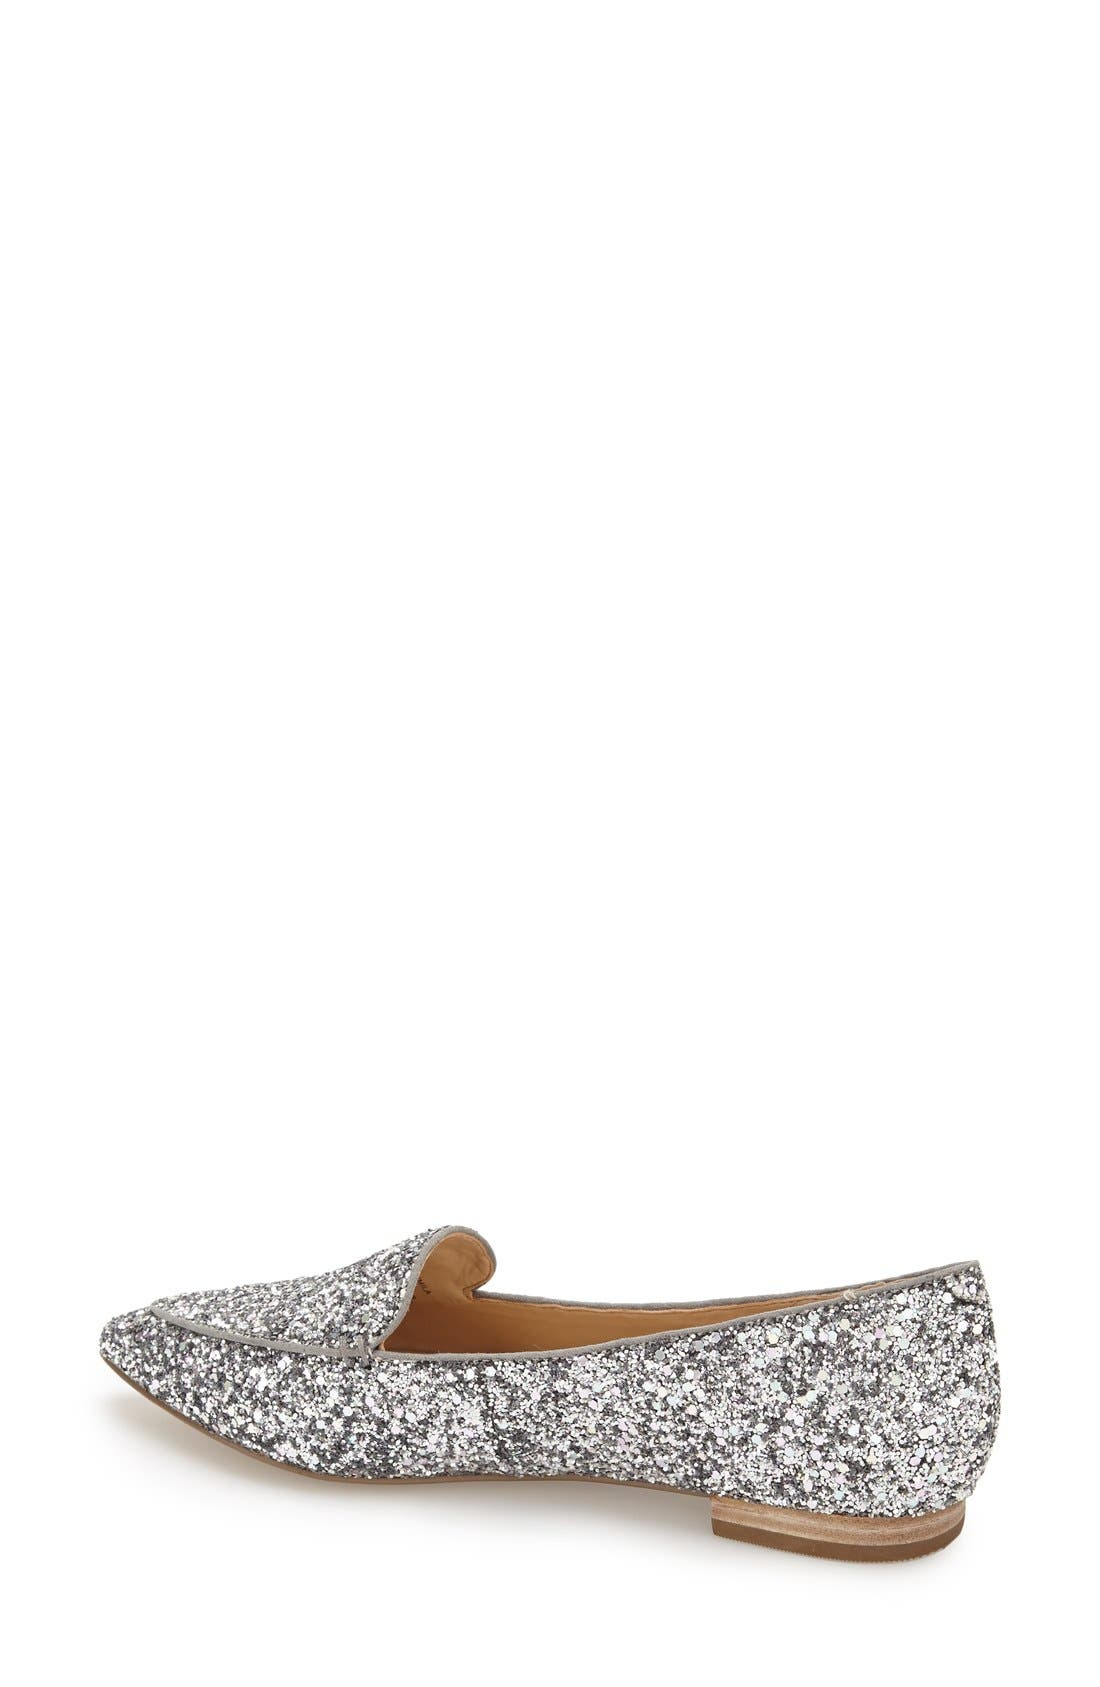 'Cammila' Pointy Toe Loafer,                             Alternate thumbnail 12, color,